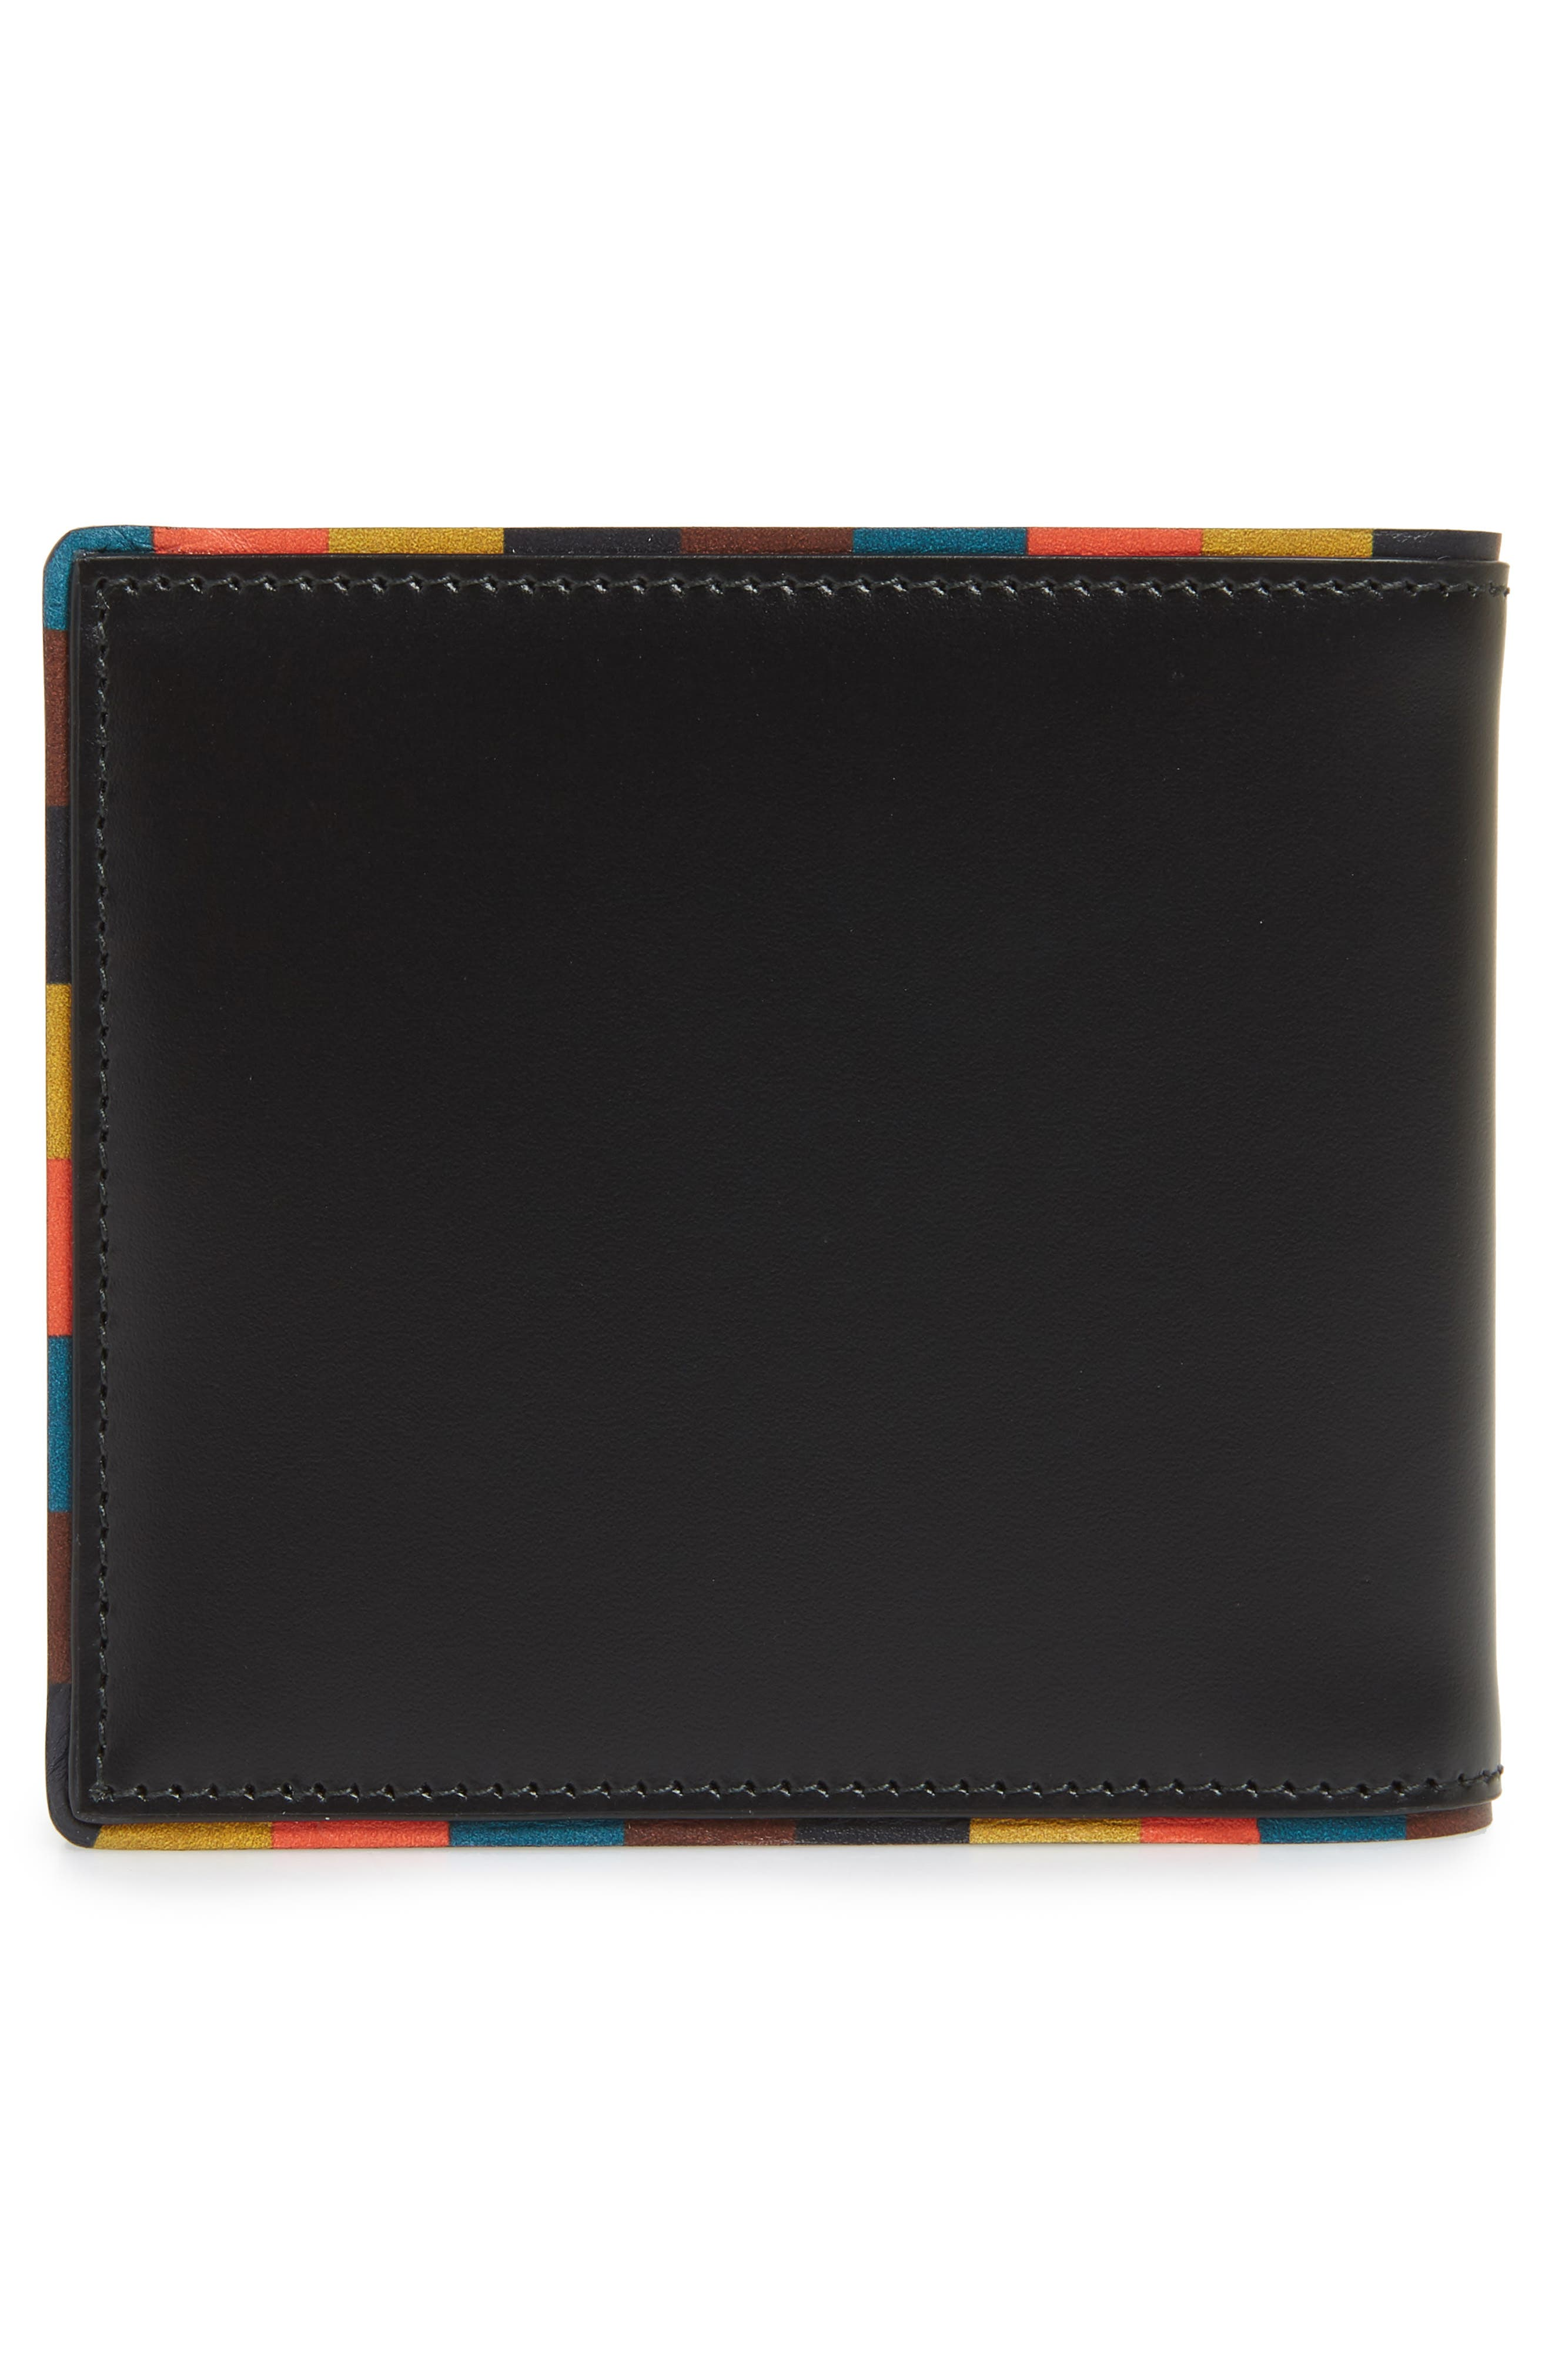 PAUL SMITH,                             Leather Billfold Wallet,                             Alternate thumbnail 3, color,                             001